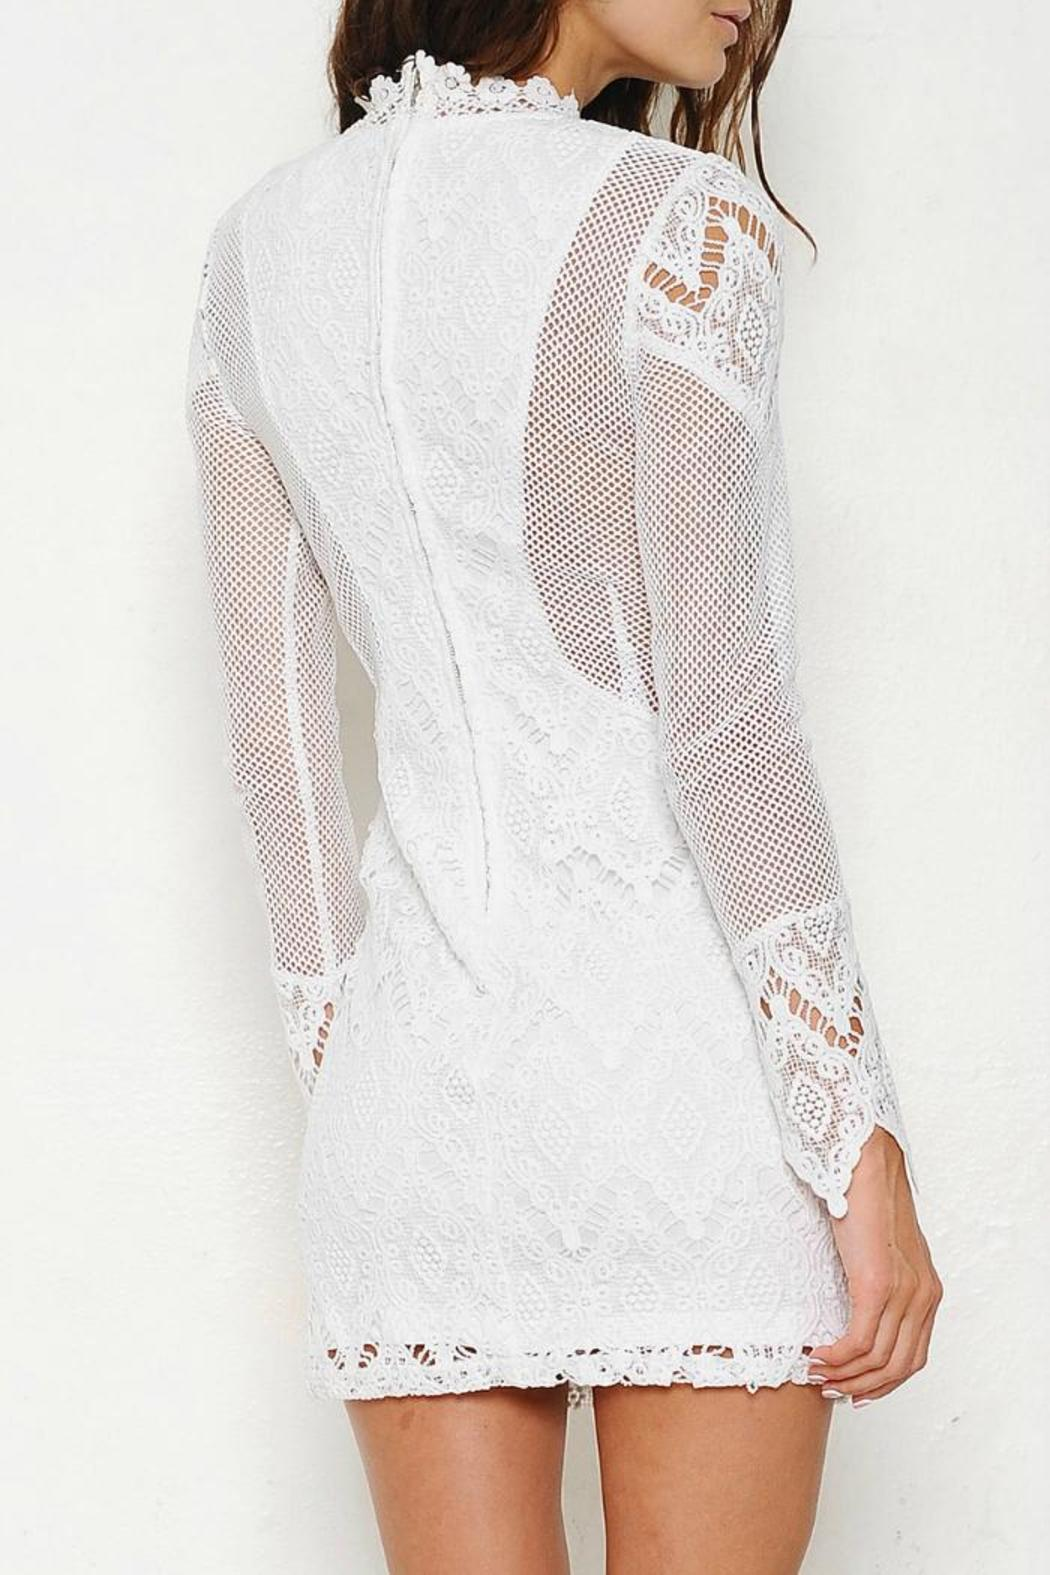 Latiste by AMY Sheer Mesh Dress - Front Full Image